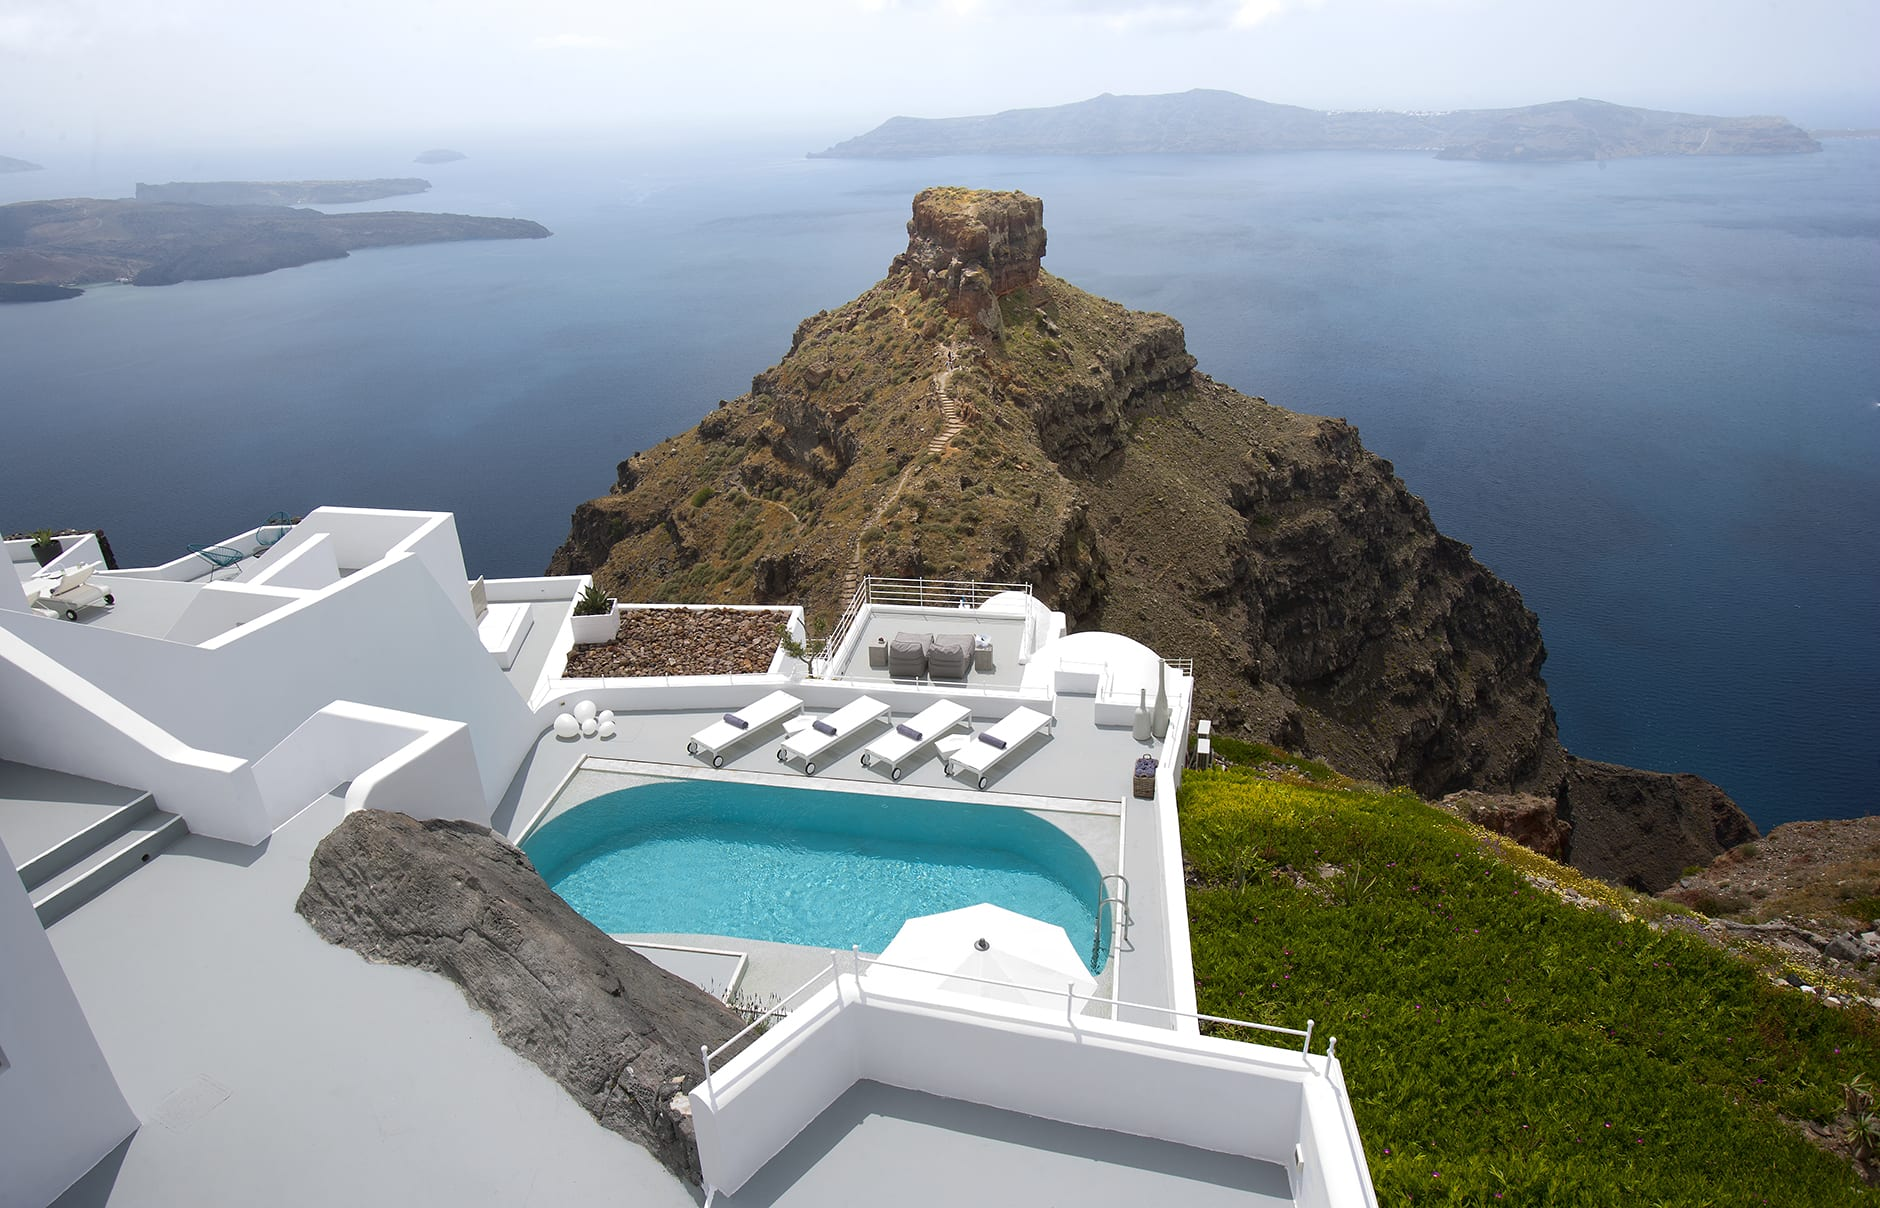 The Villa, Private Pool Terrace. Grace Hotel Santorini, Greece. Luxury Hotel Review by TravelPlusStyle. Photo © Auberge Resorts Collection